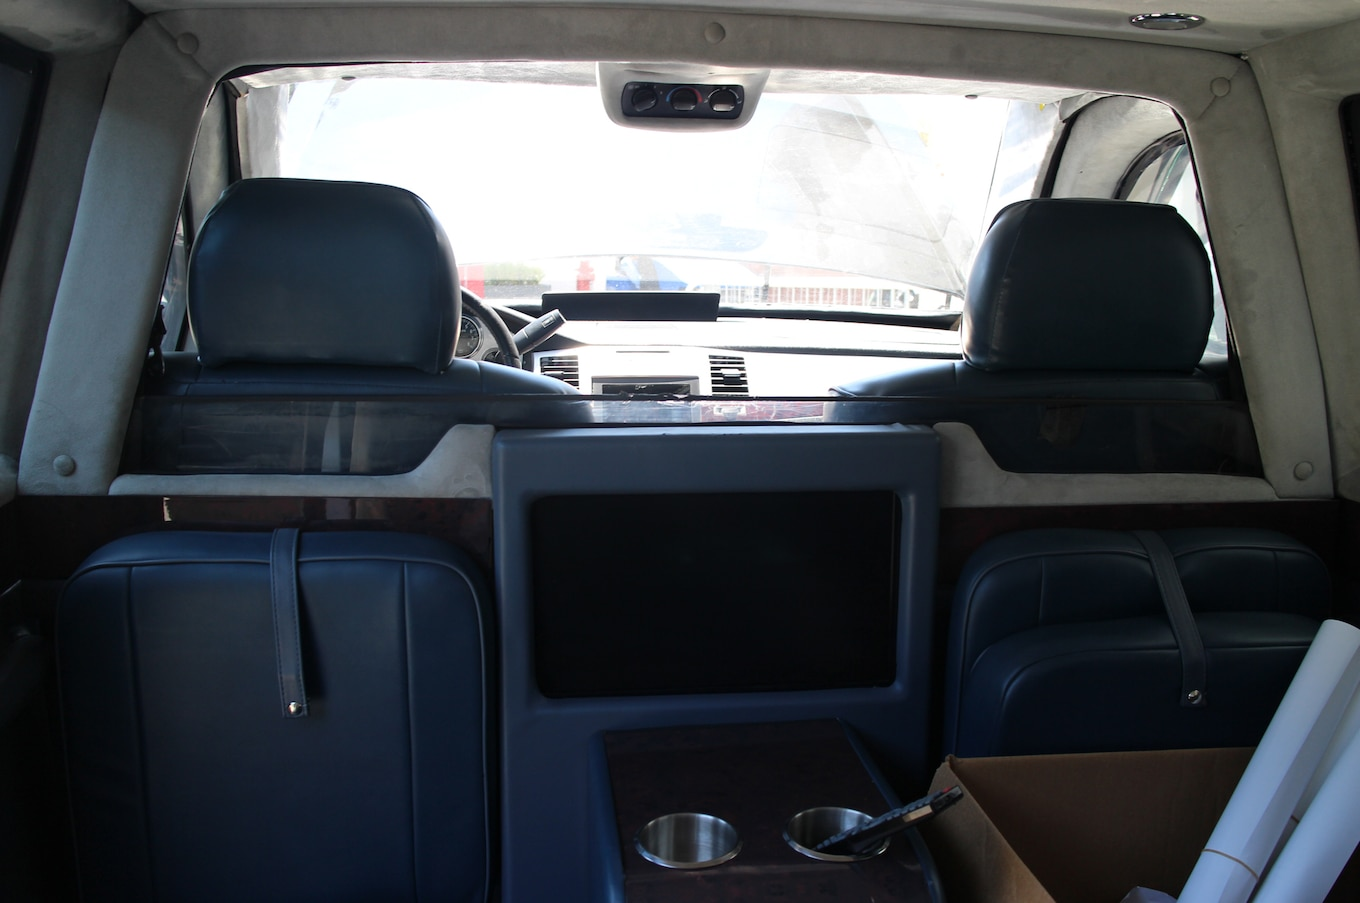 Driving The Cadillac Presidential Limo From White House Down